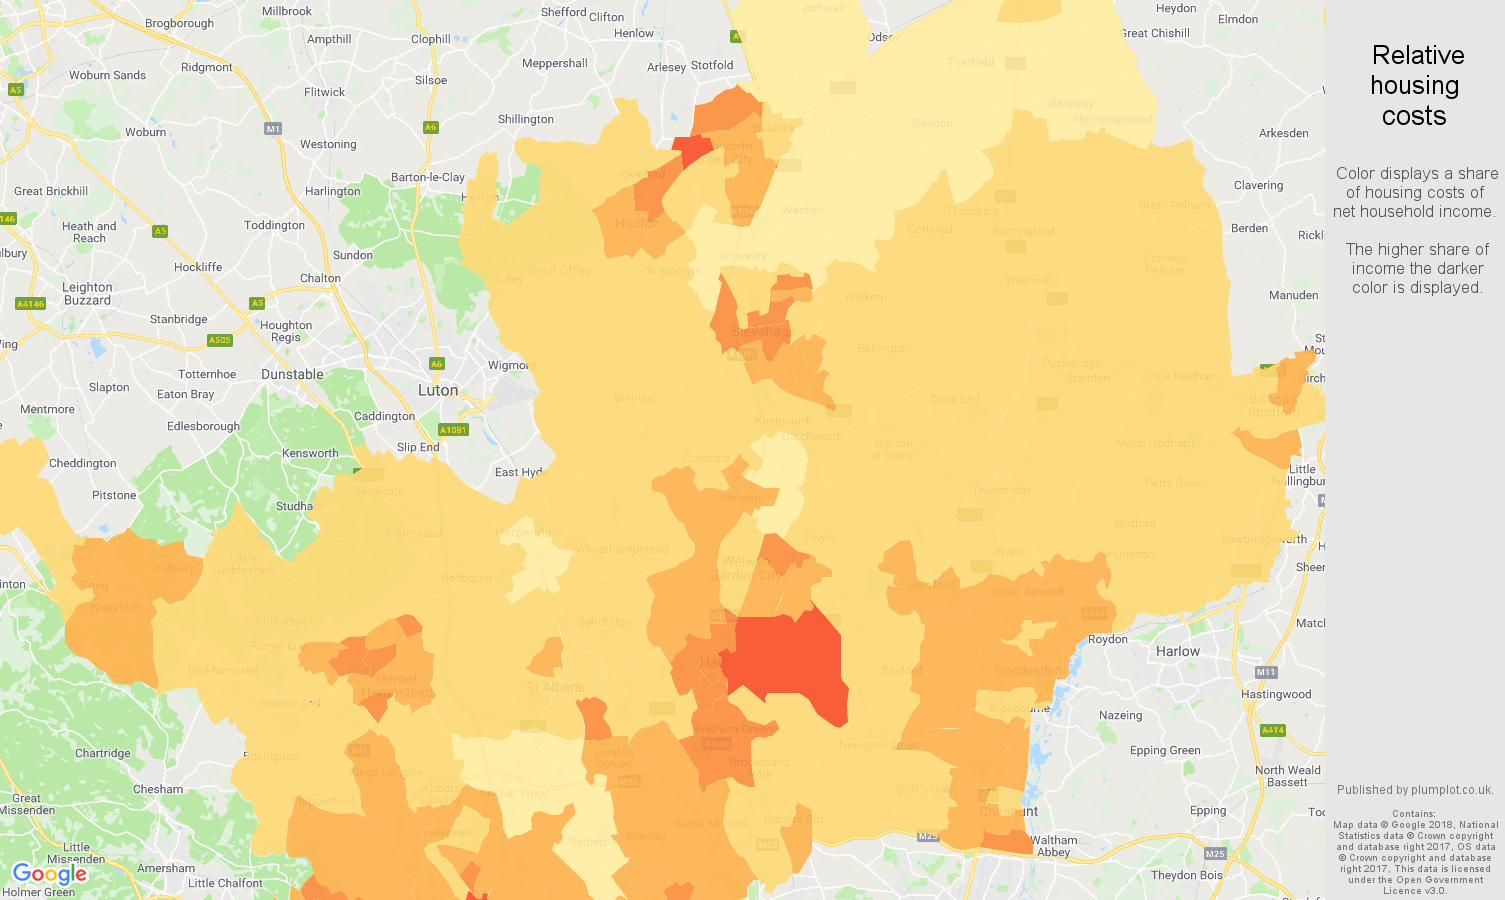 Hertfordshire relative housing costs map